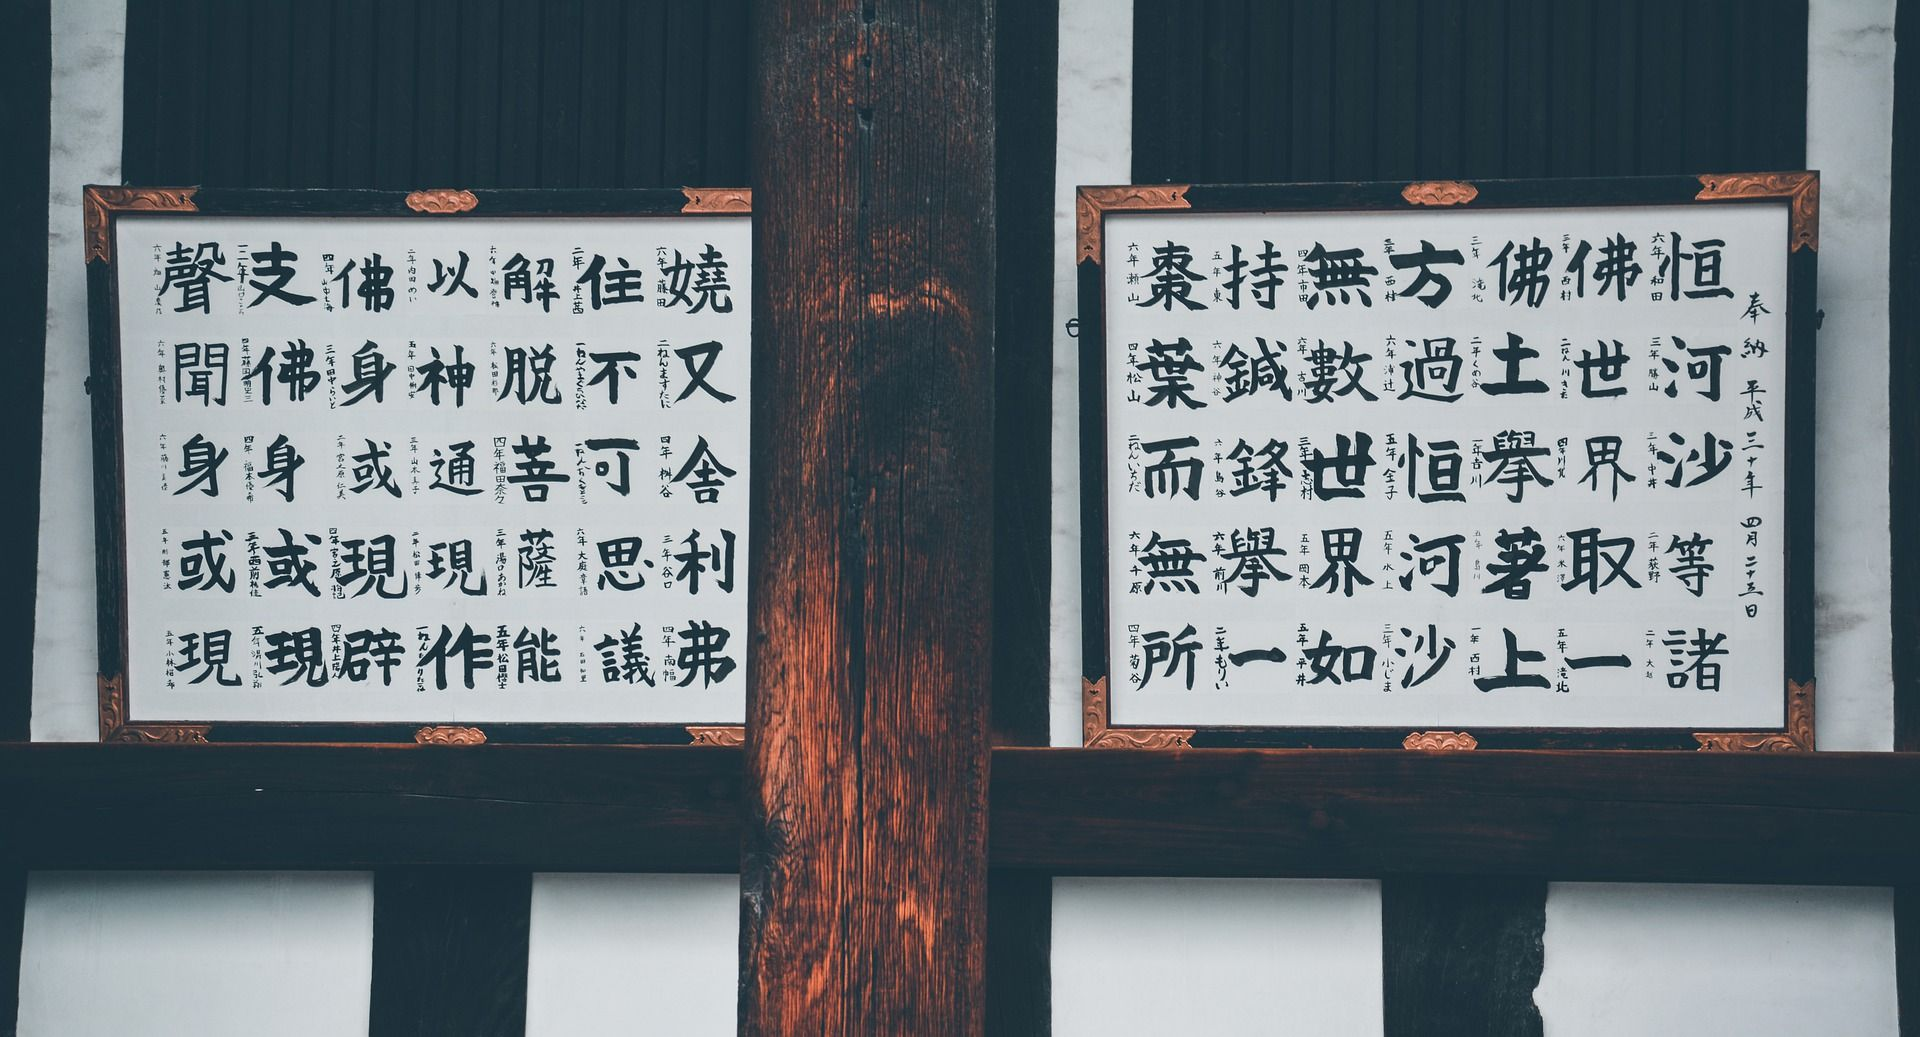 Wooden boards with Chinese characters